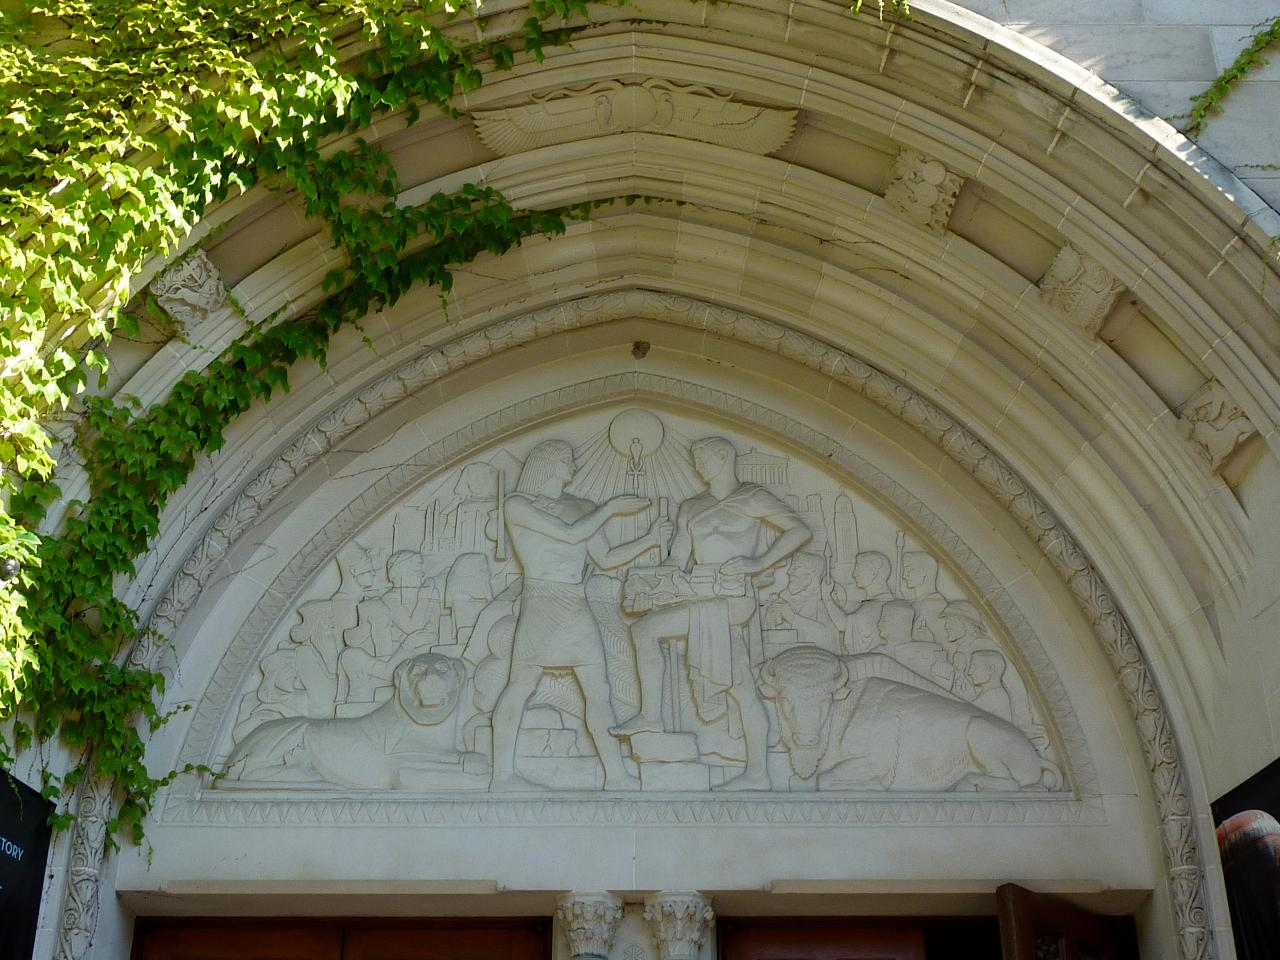 University of Chicago Campus Architecture Virtual Tour for Family Weekend